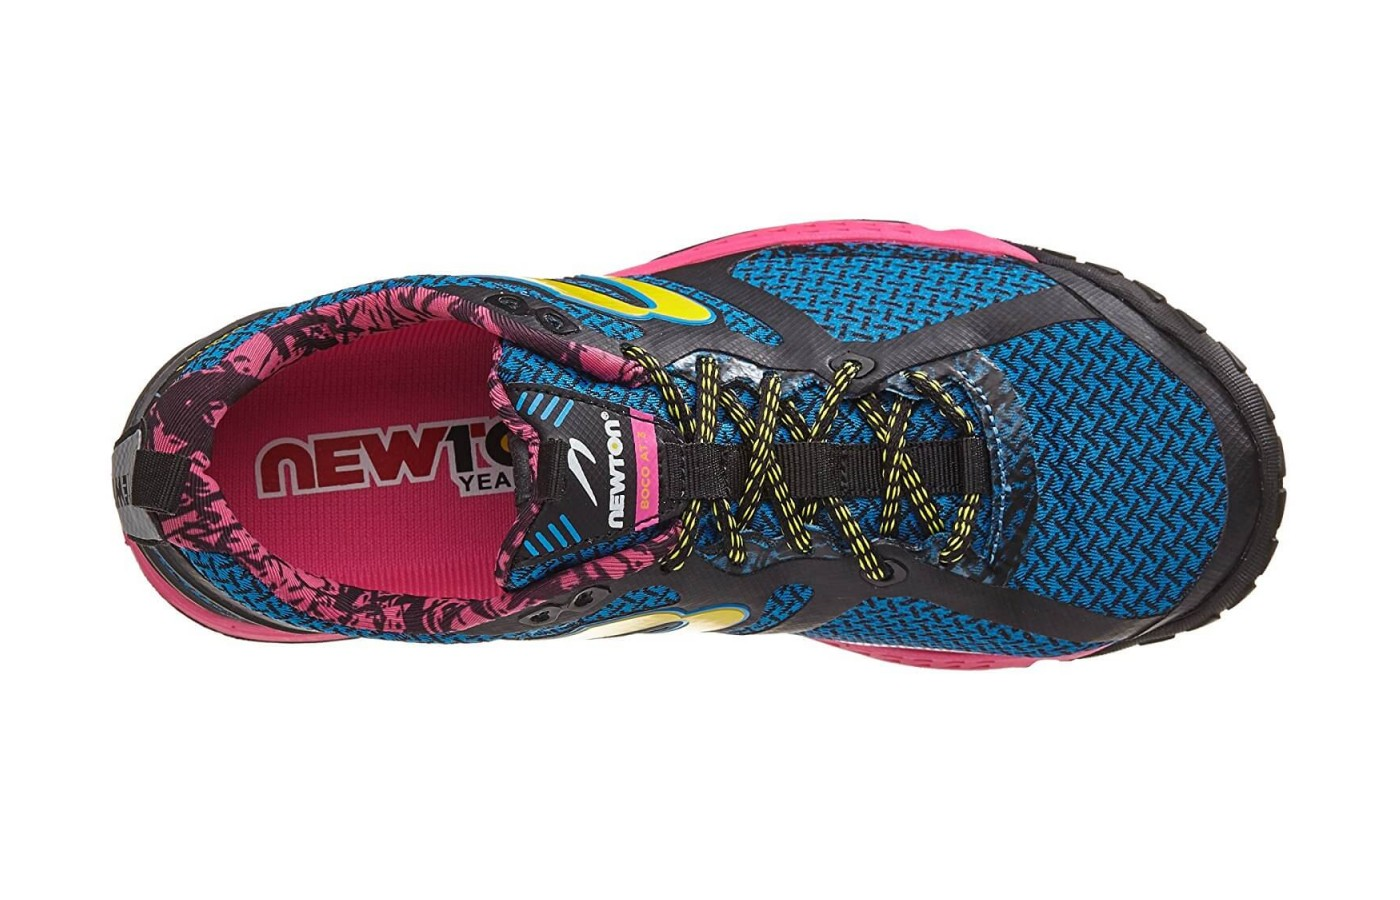 The Newton BoCo AT 3 features a closed mesh upper